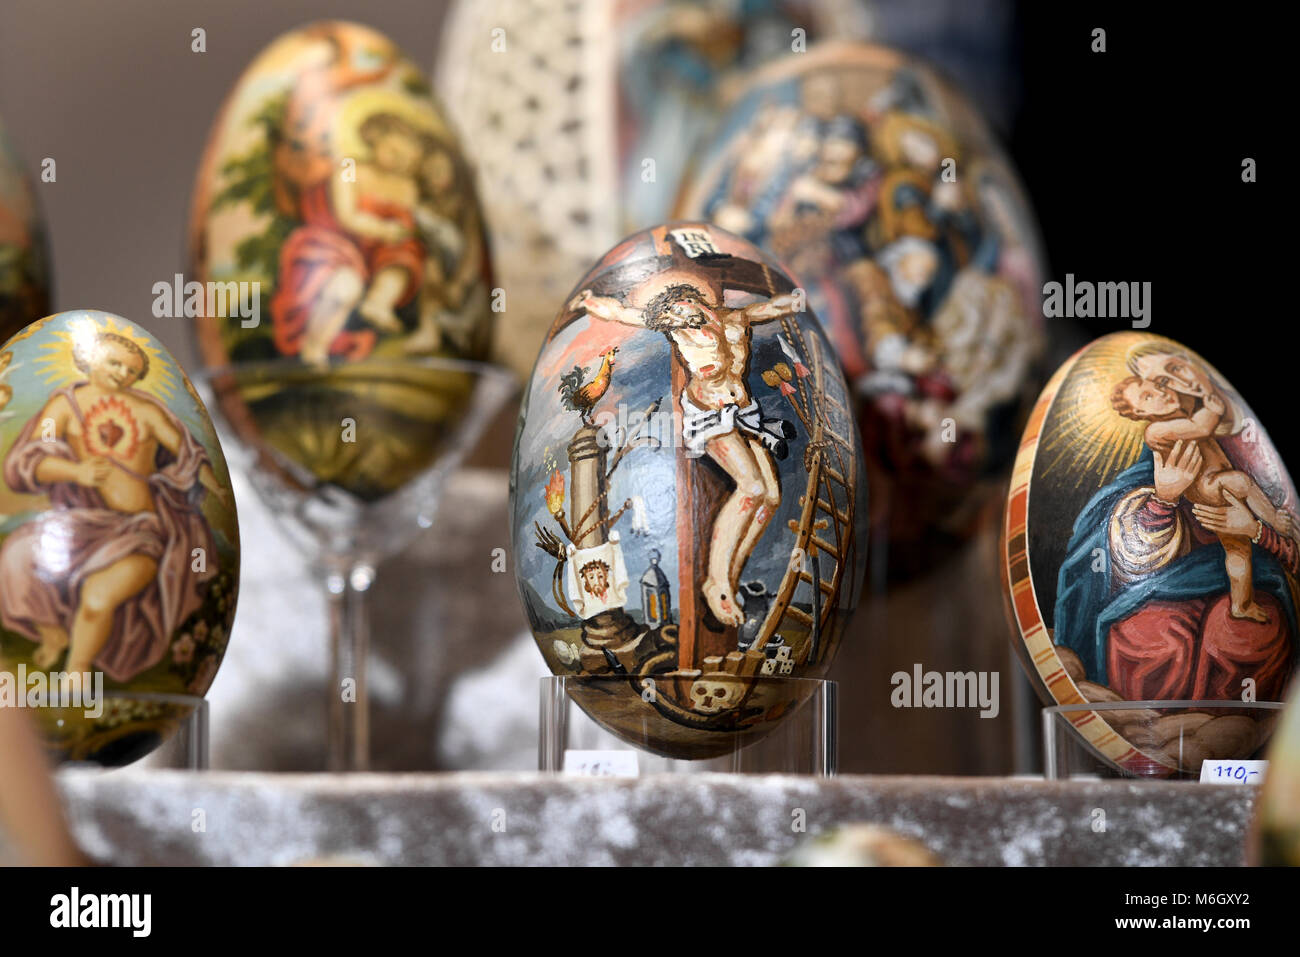 03 March 2018, Germany, Wangen im Allgaeu: An Easter egg depicting the crucified Christ seen at the stand of artist - Stock Image